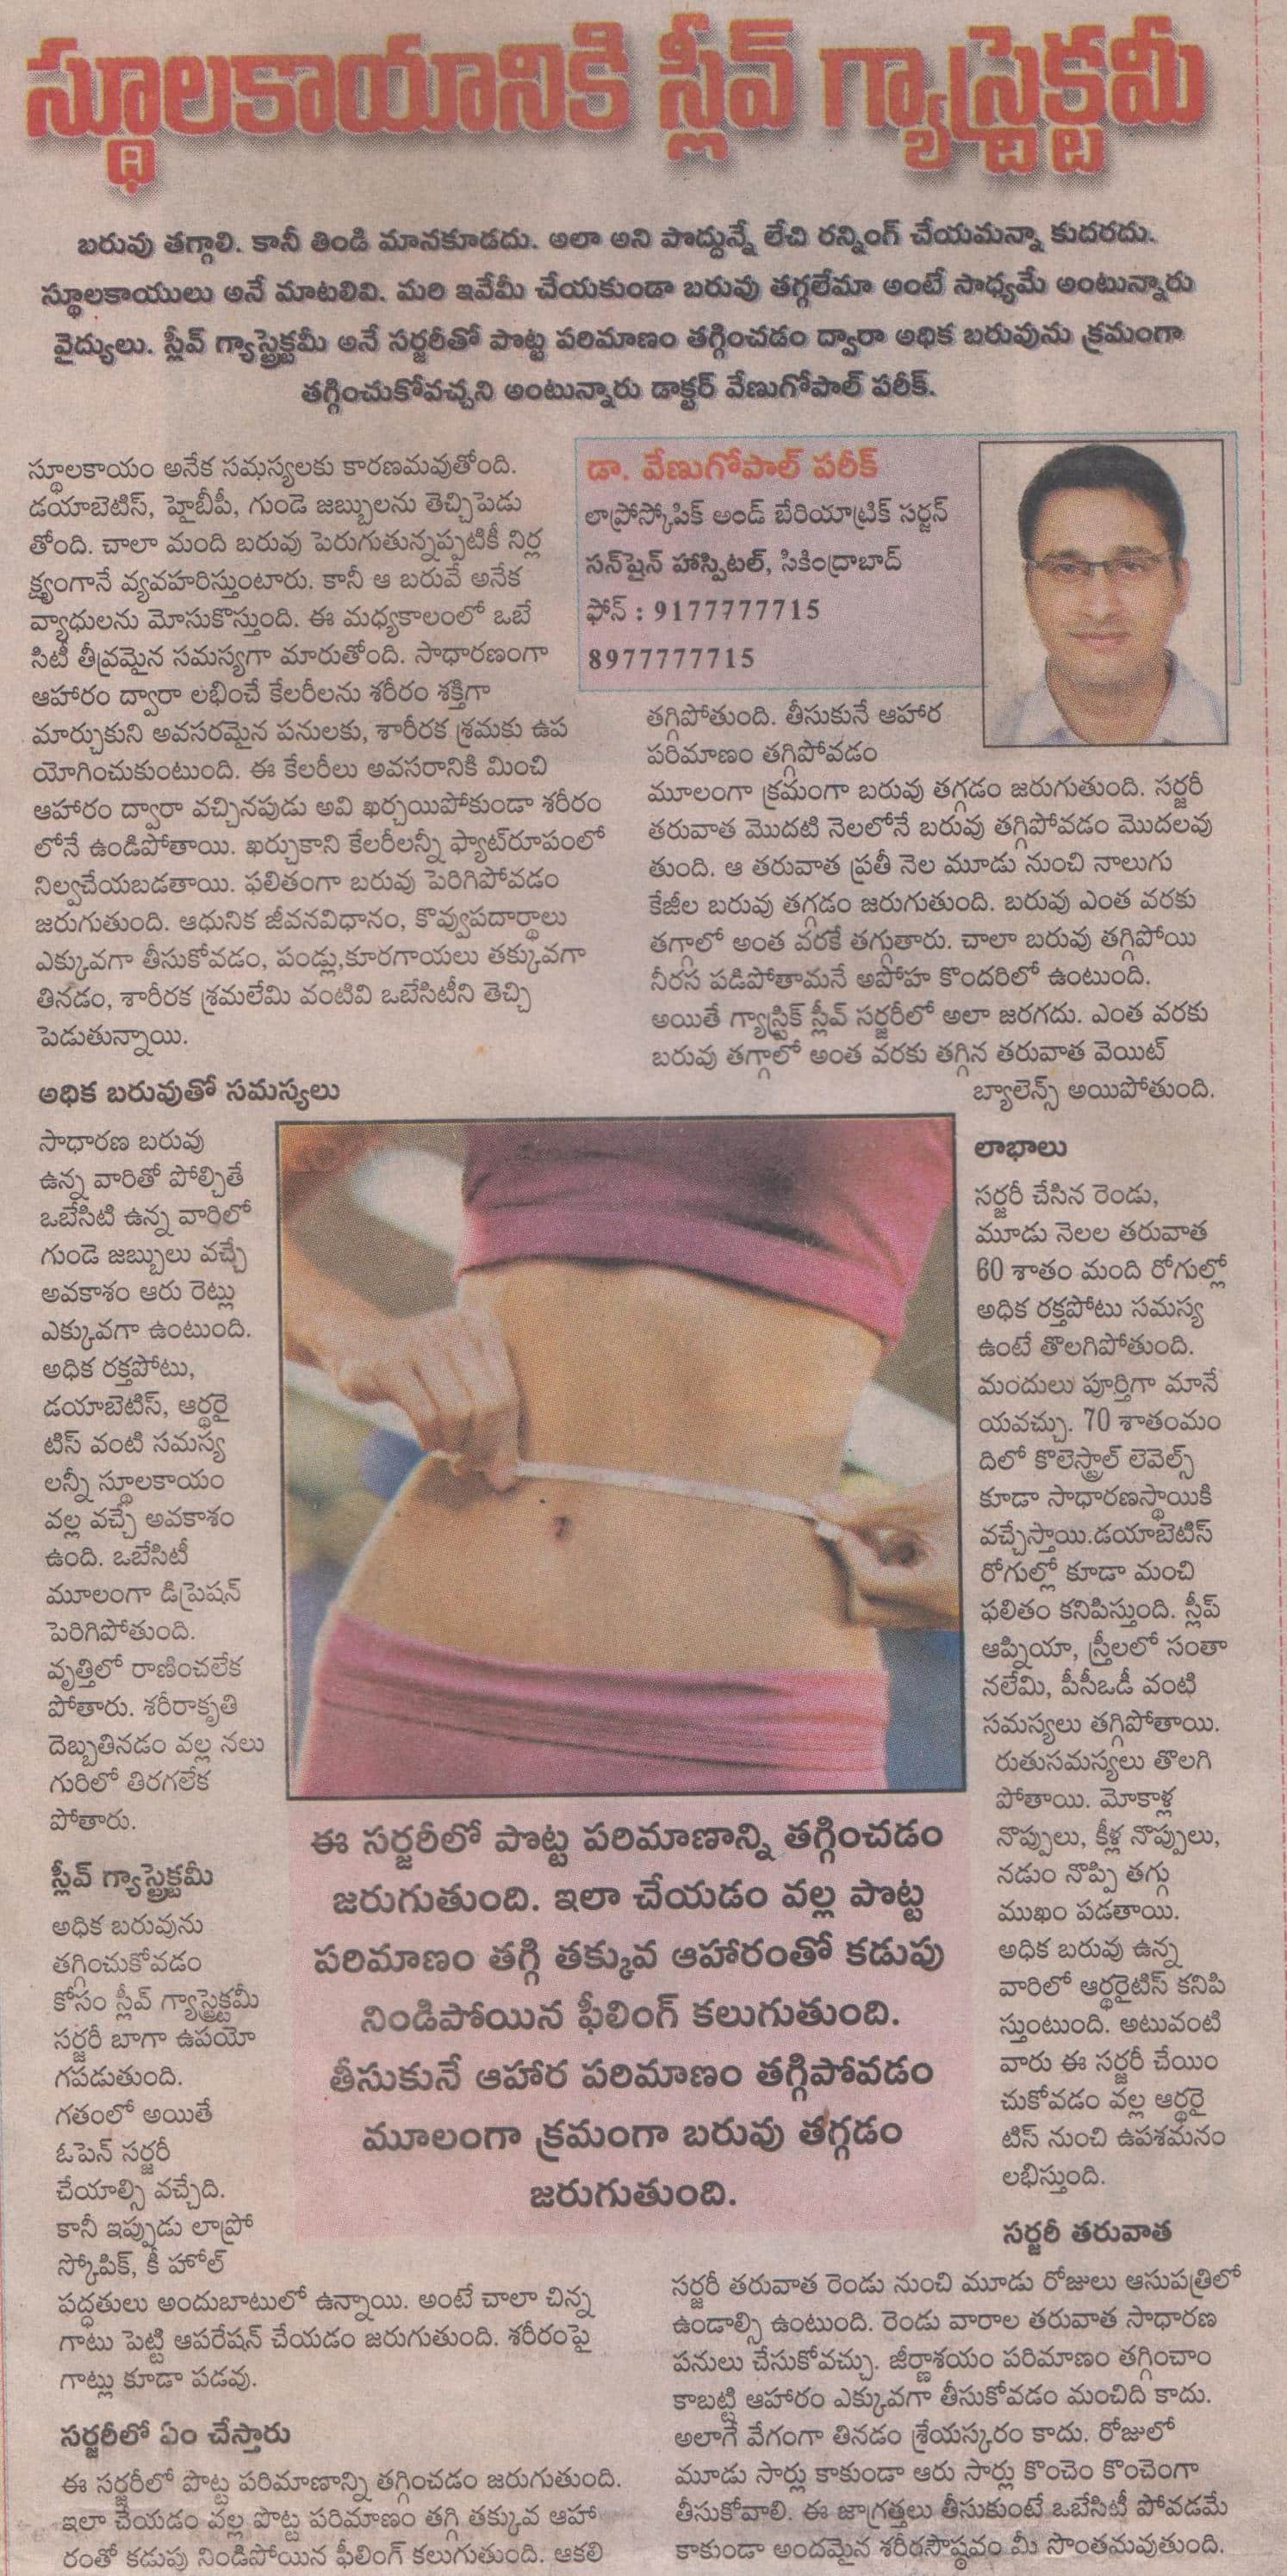 Surgical sleeve gastrectomy for treatment of obesity explained by Dr V Pareek in Telugu news media